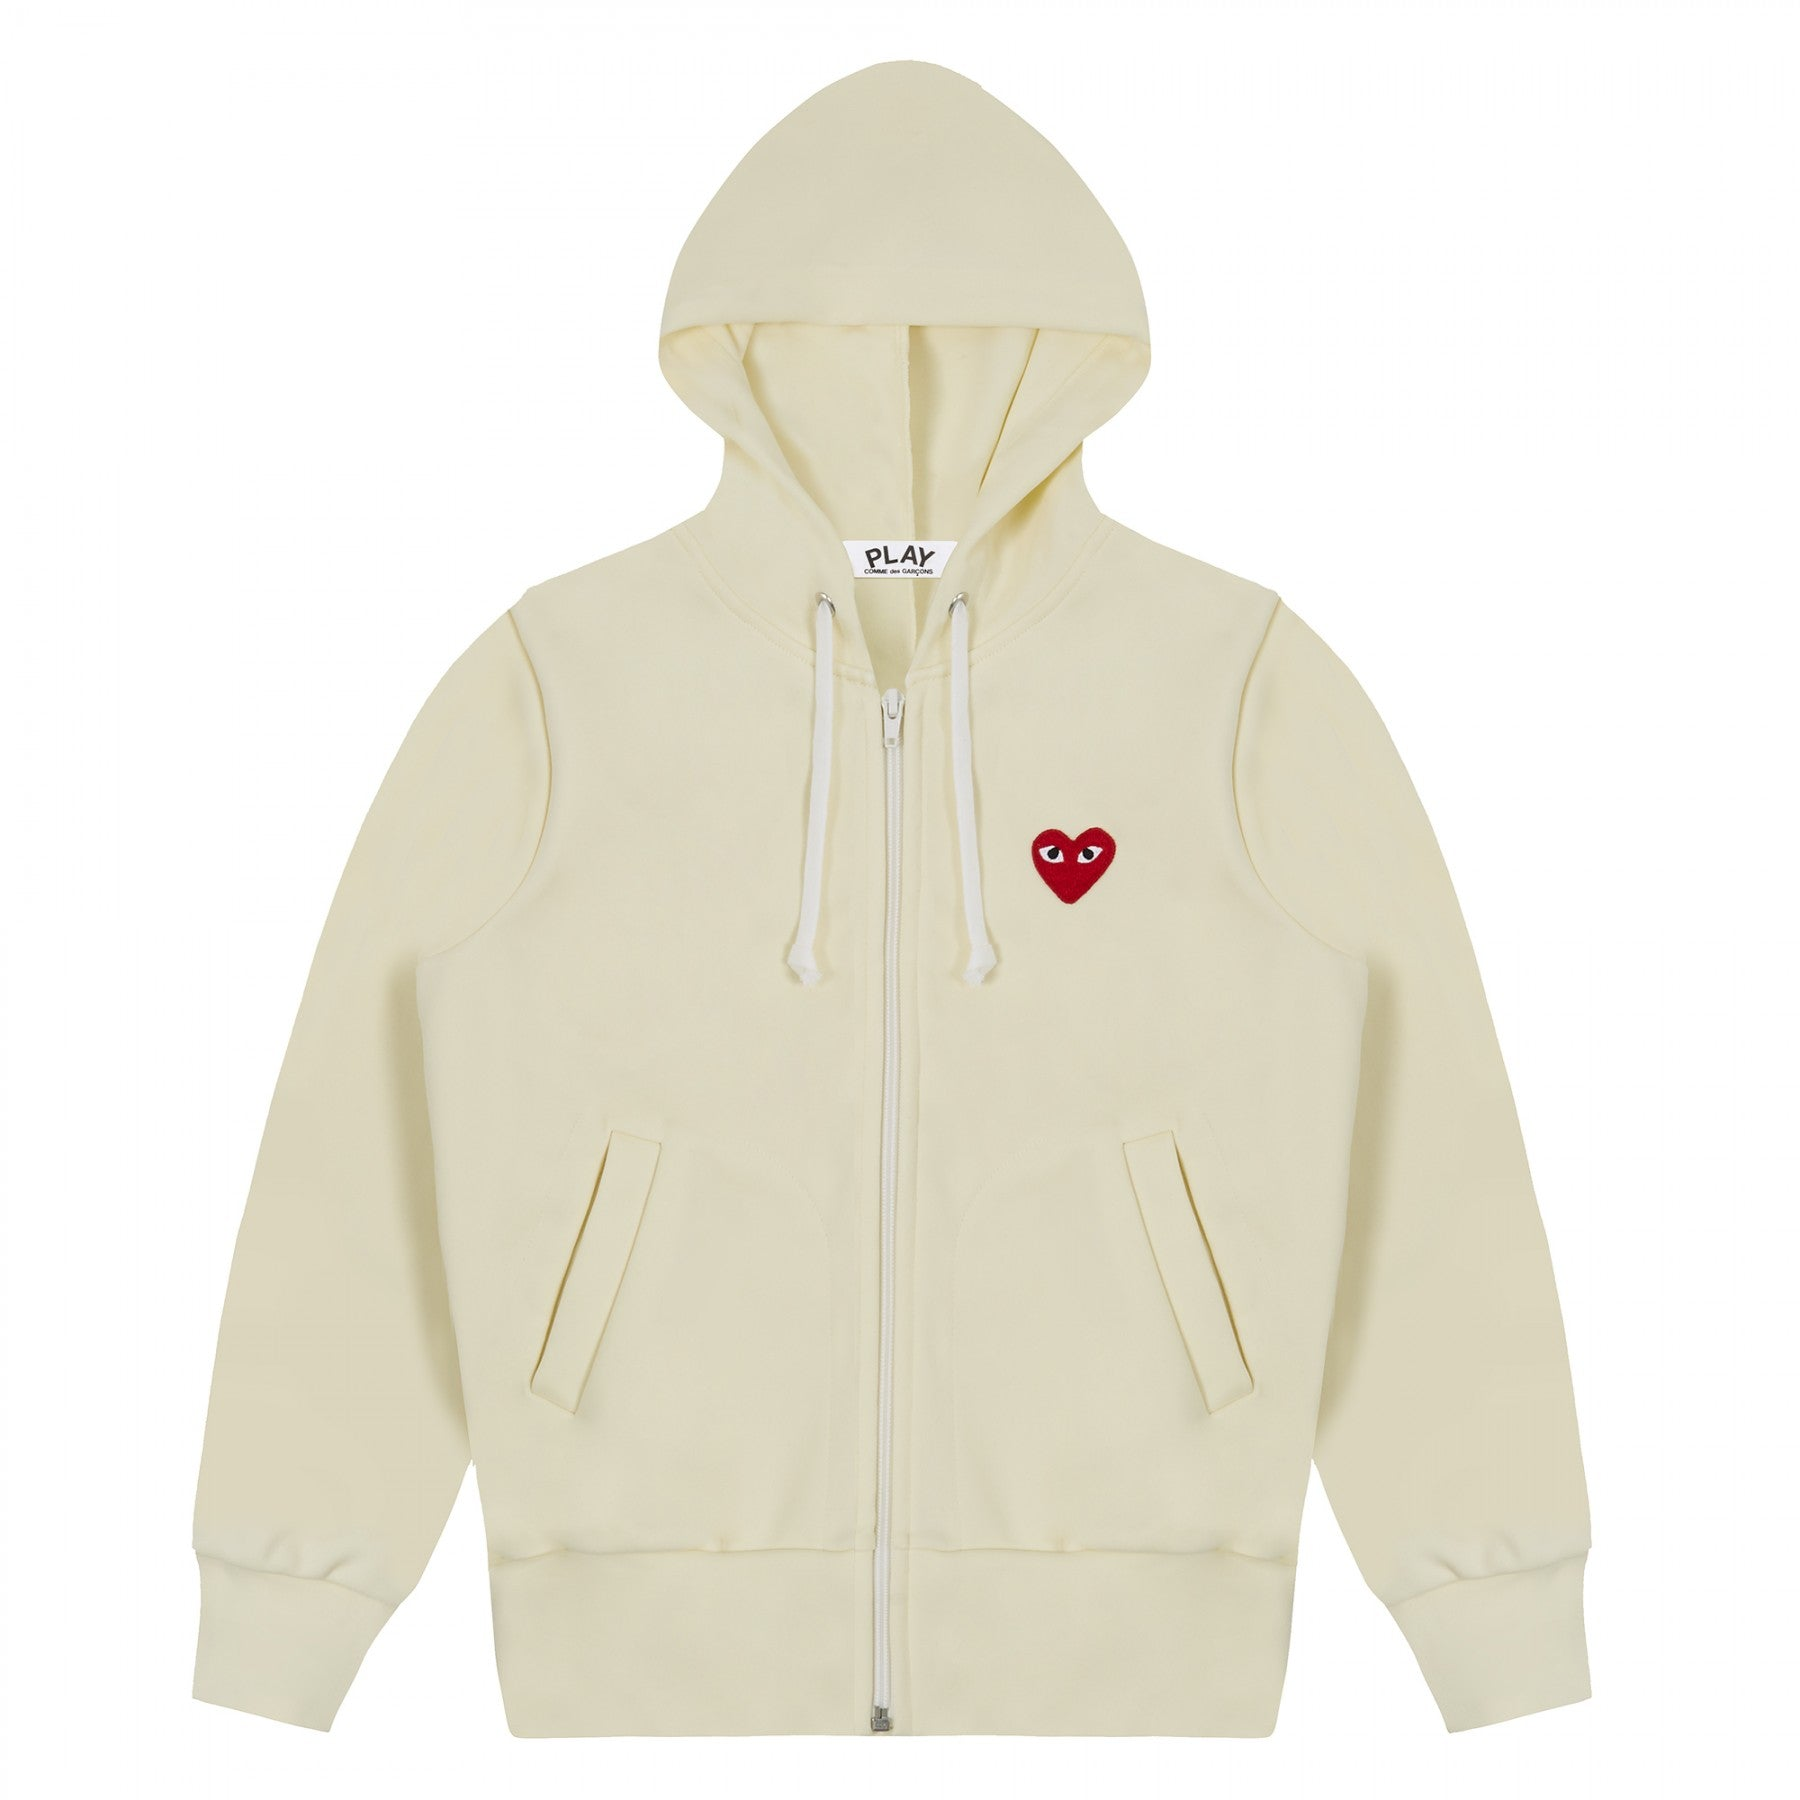 COMME DES GARCONS - PLAY ZIP HOODED SWEATSHIRT (IVORY) WMNS